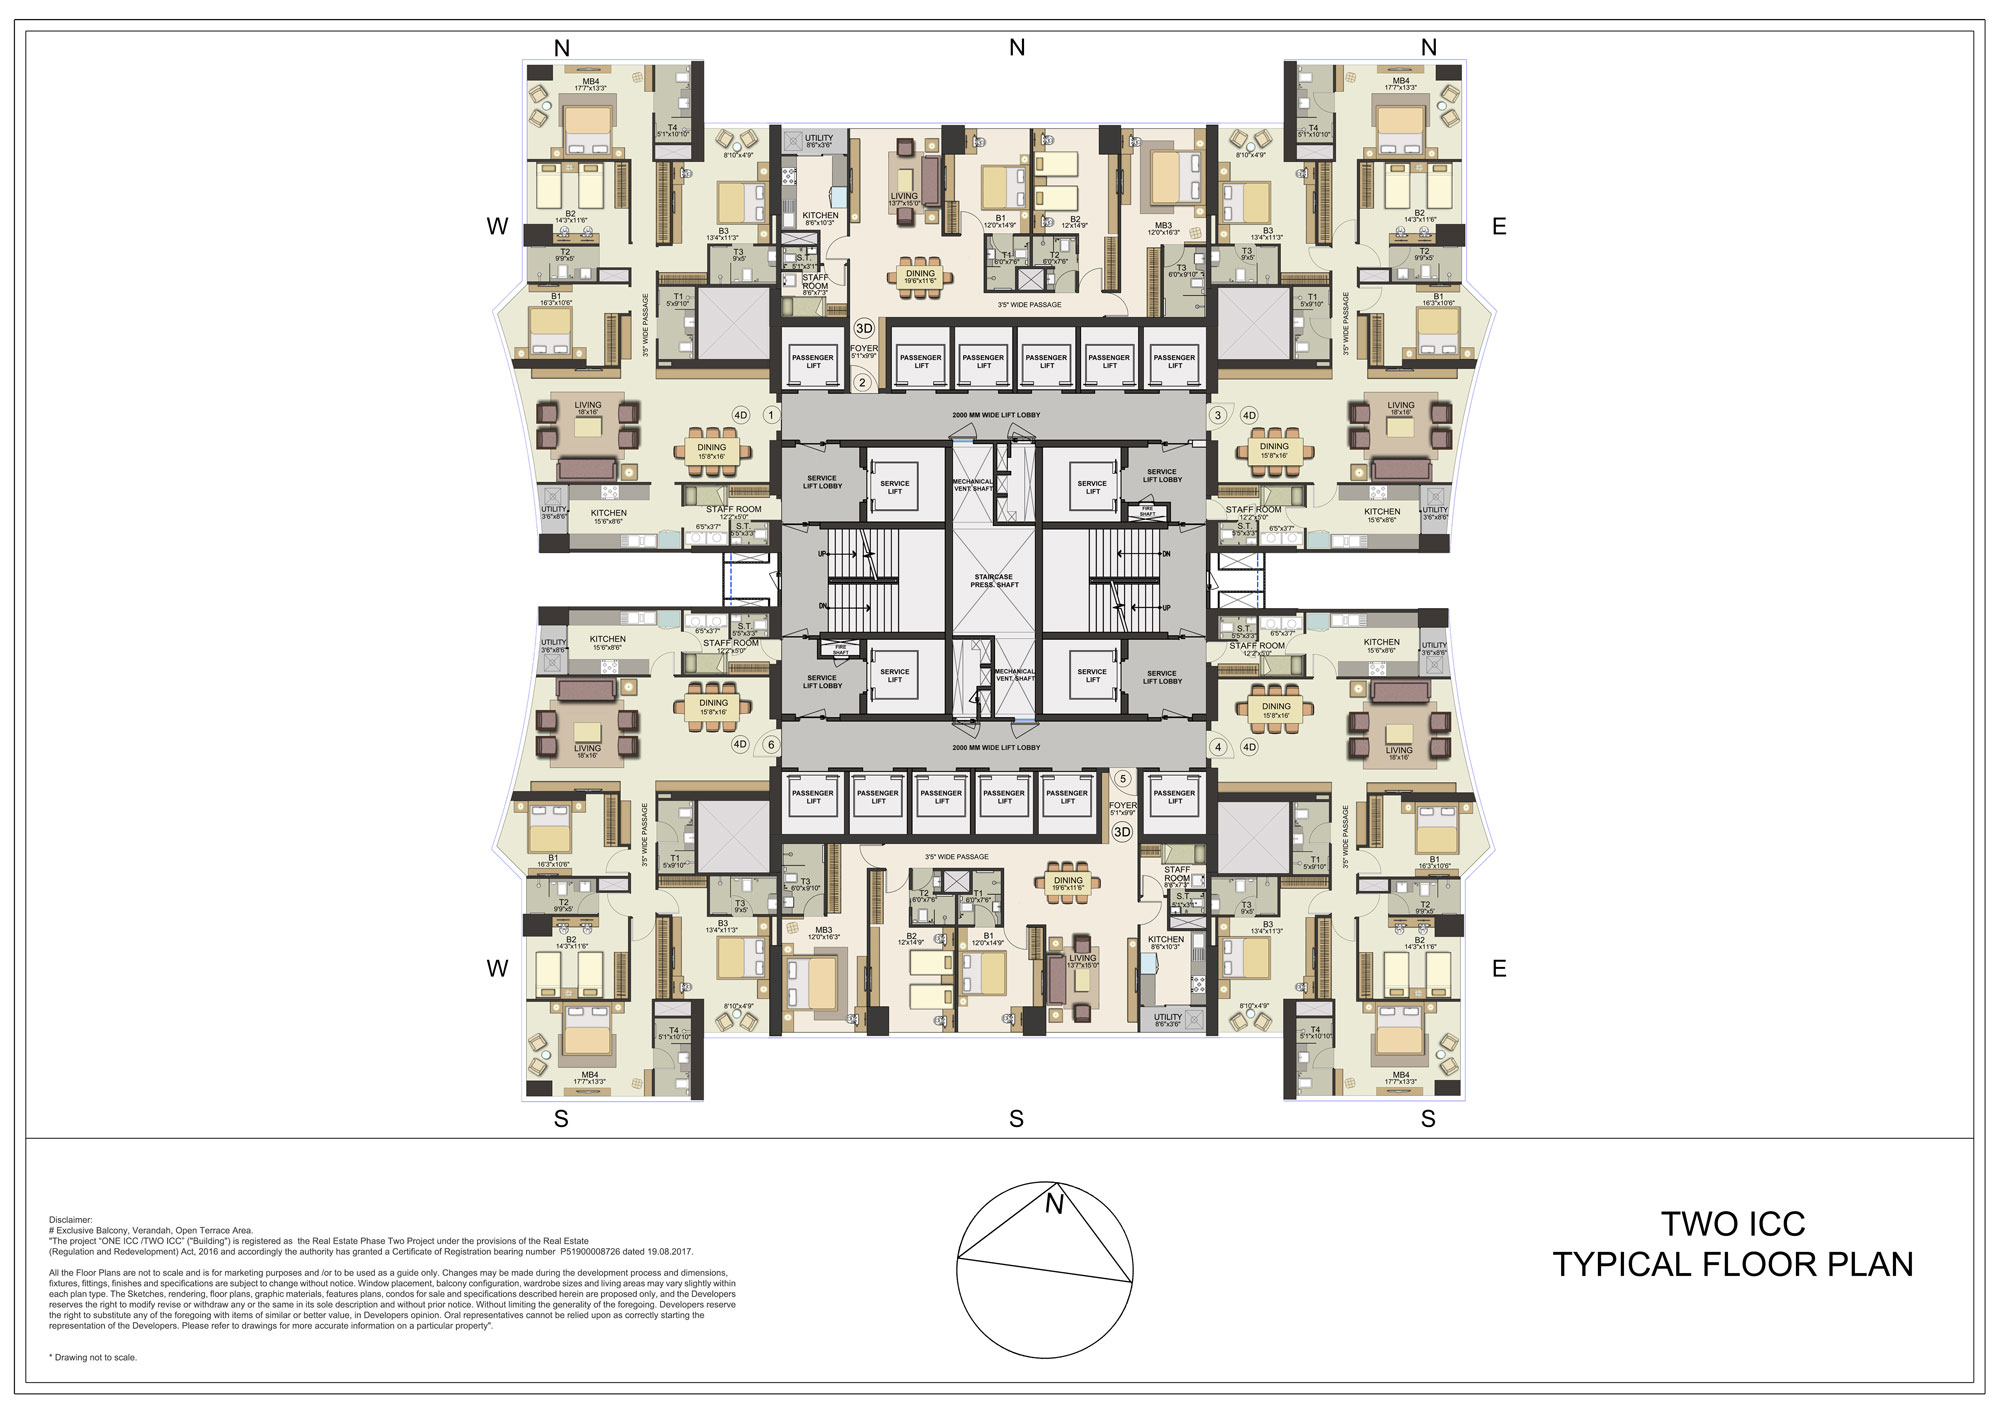 Two ICC Typical Floor Plan